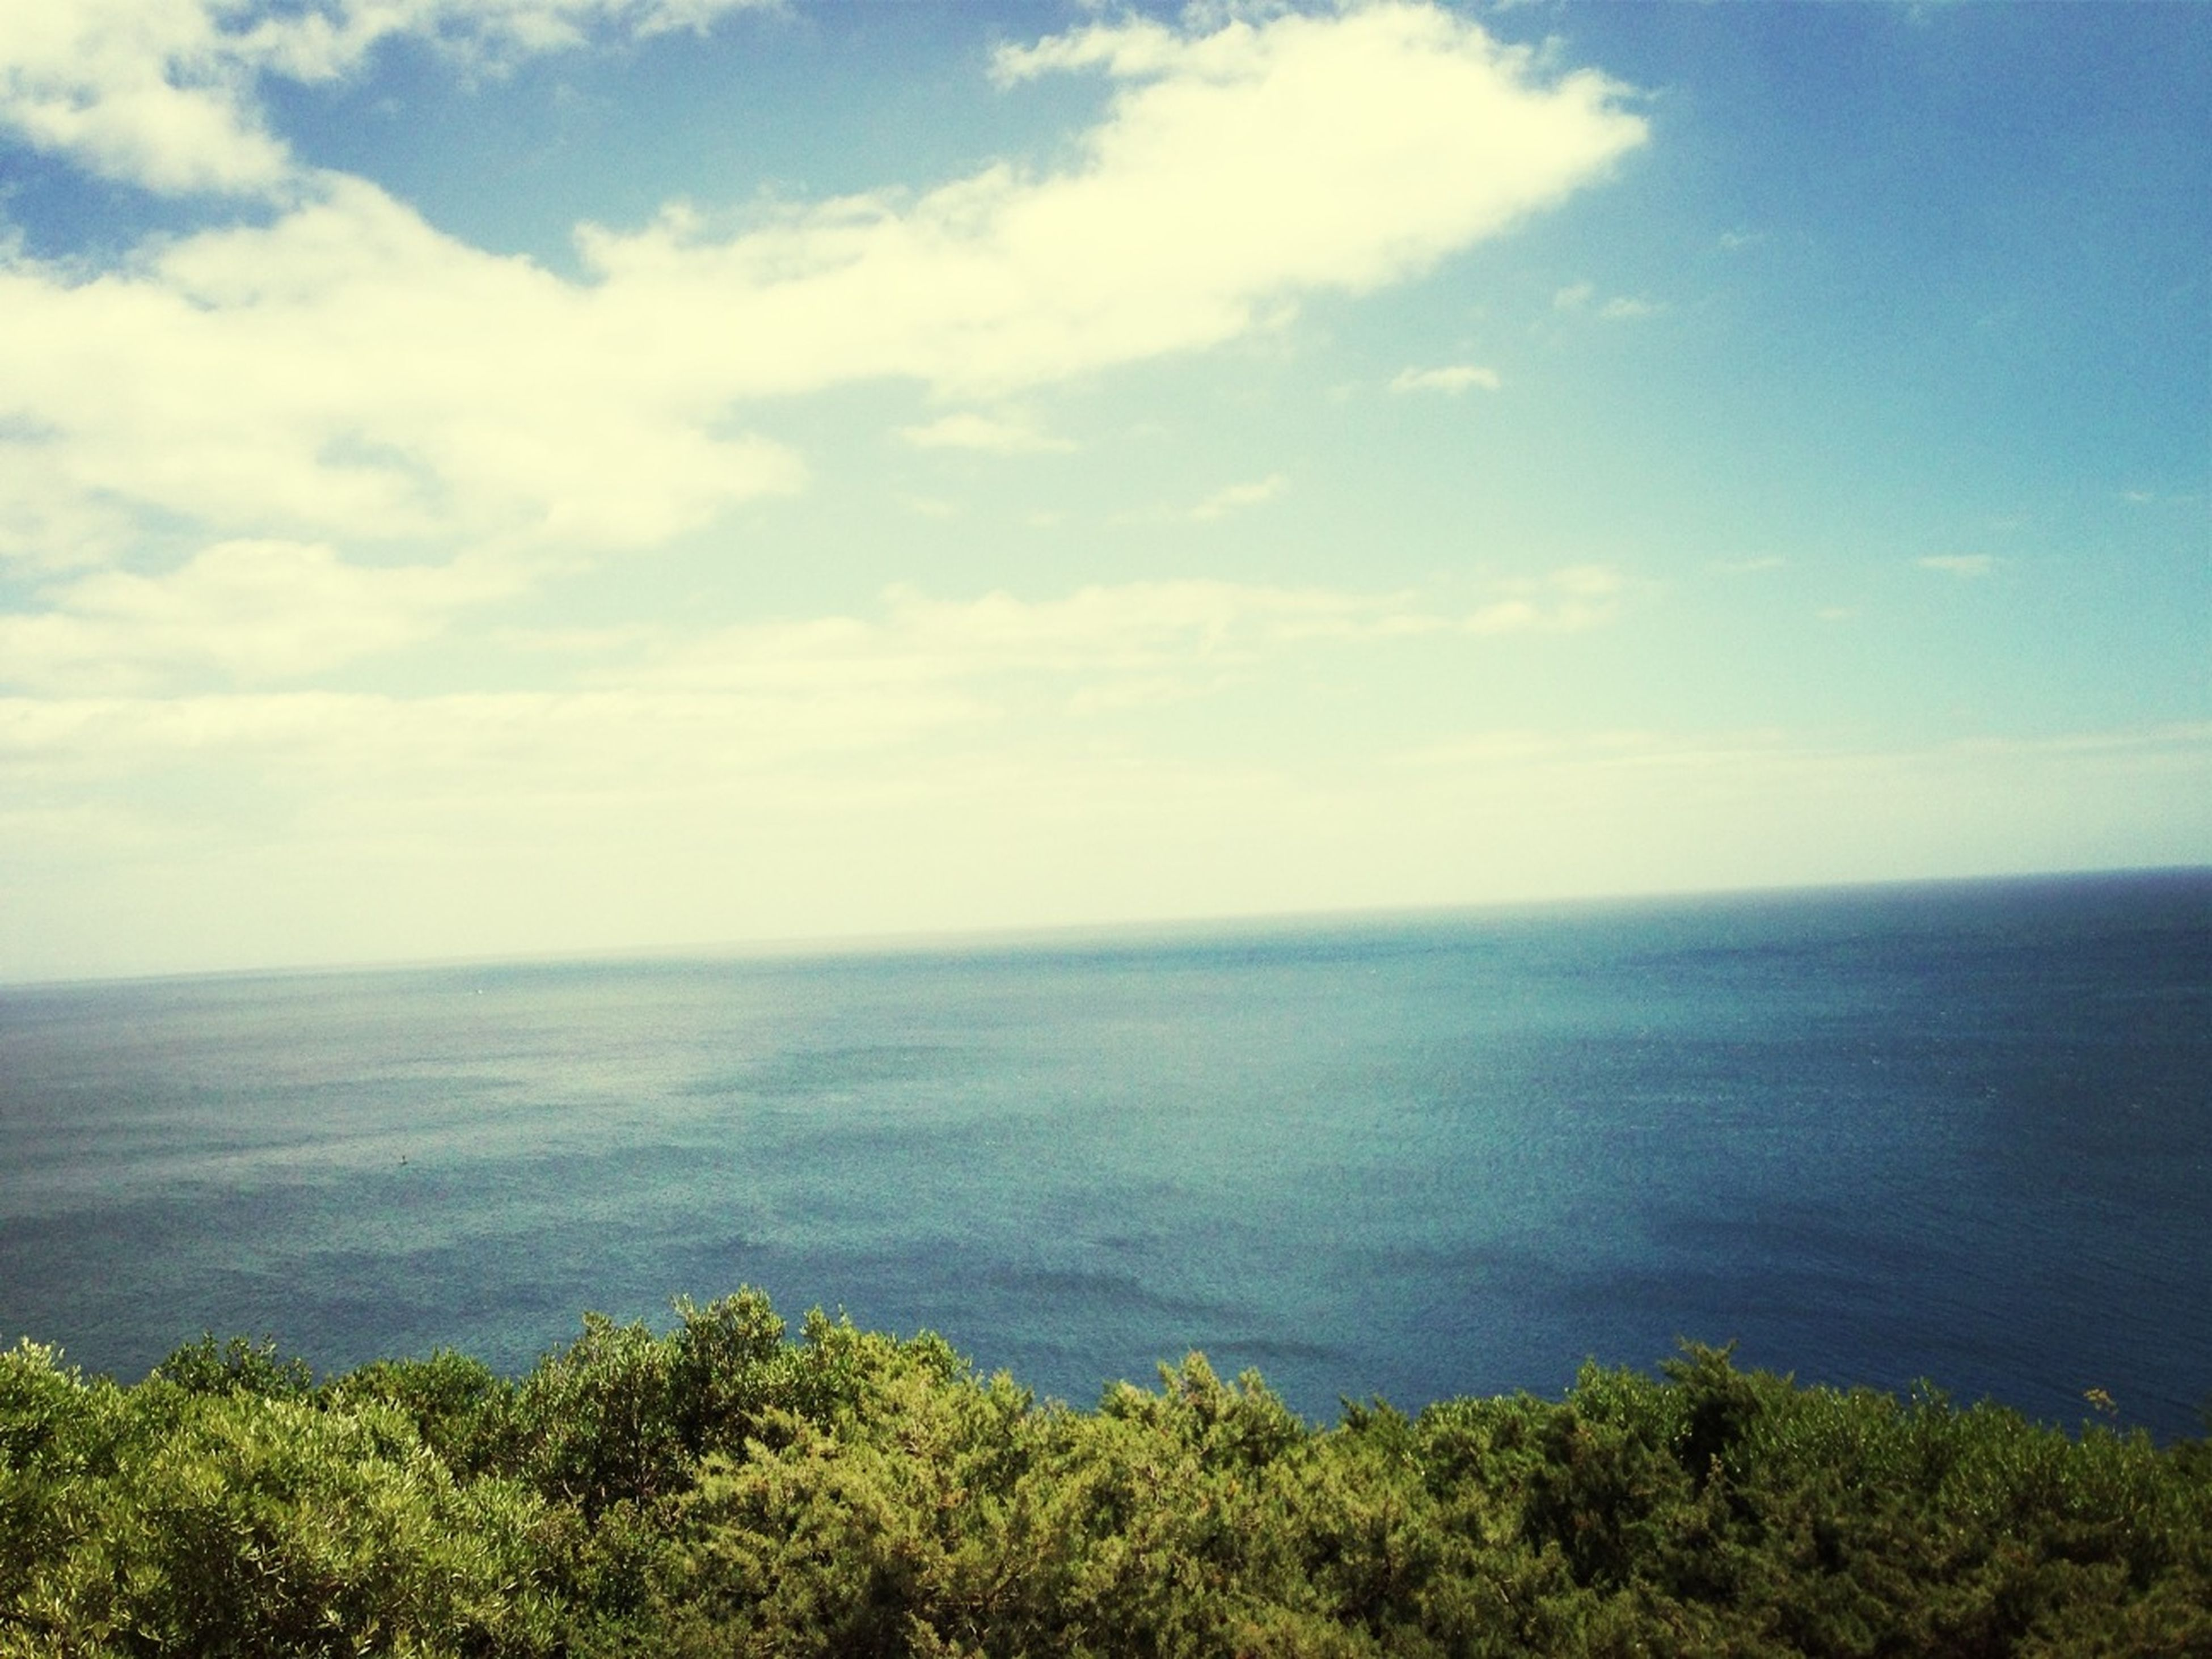 sea, horizon over water, tranquil scene, scenics, tranquility, water, beauty in nature, sky, nature, idyllic, cloud - sky, cloud, seascape, blue, green color, high angle view, coastline, outdoors, plant, tree